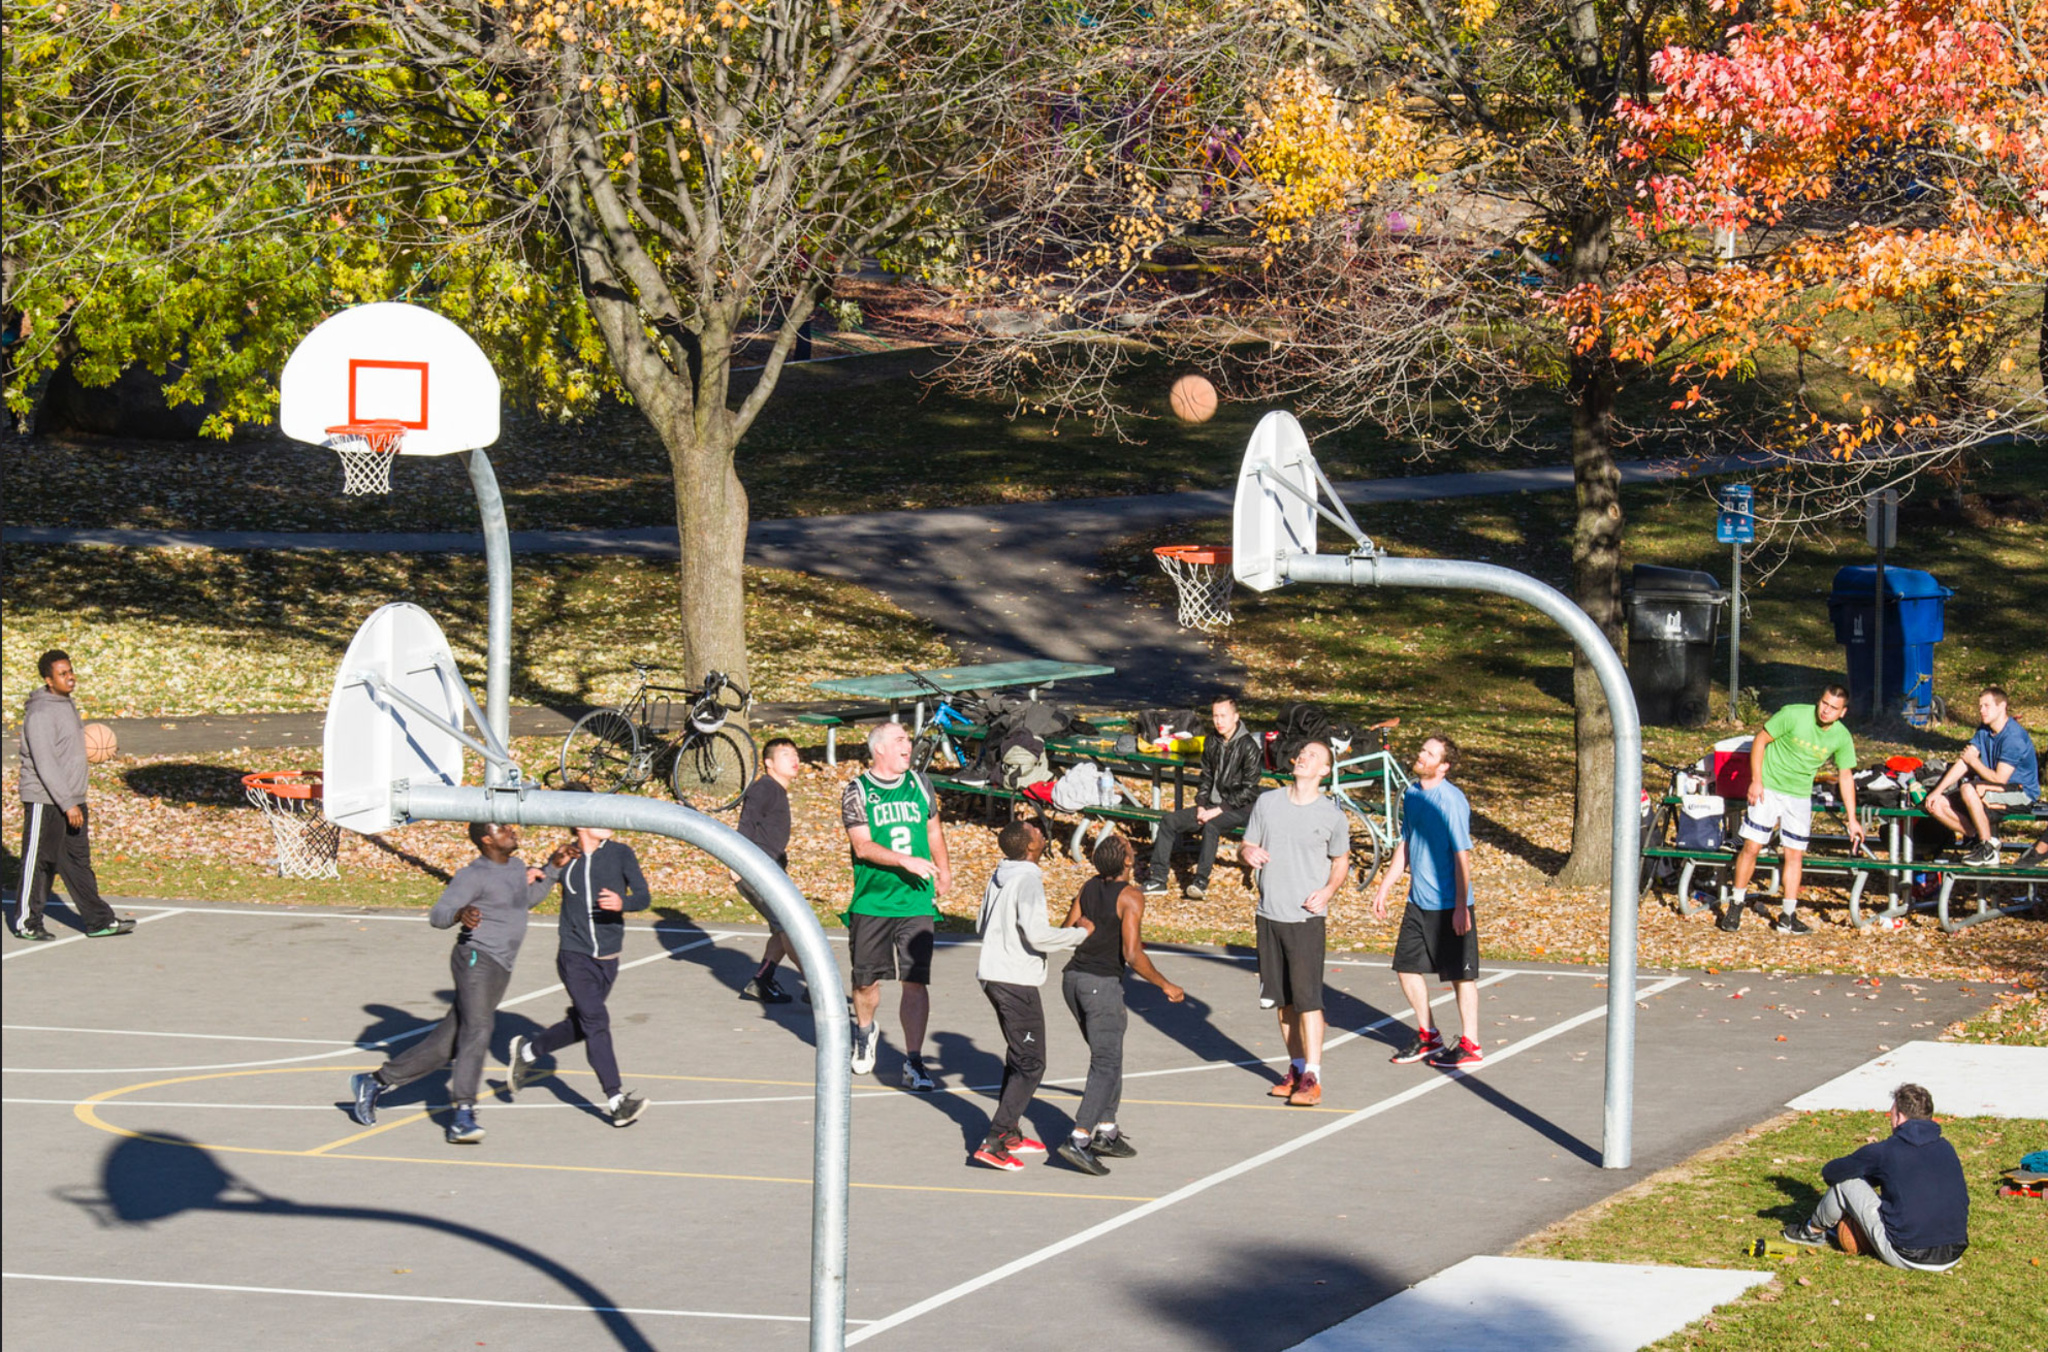 The Top 10 Basketball Courts To Play Pick Up In Toronto